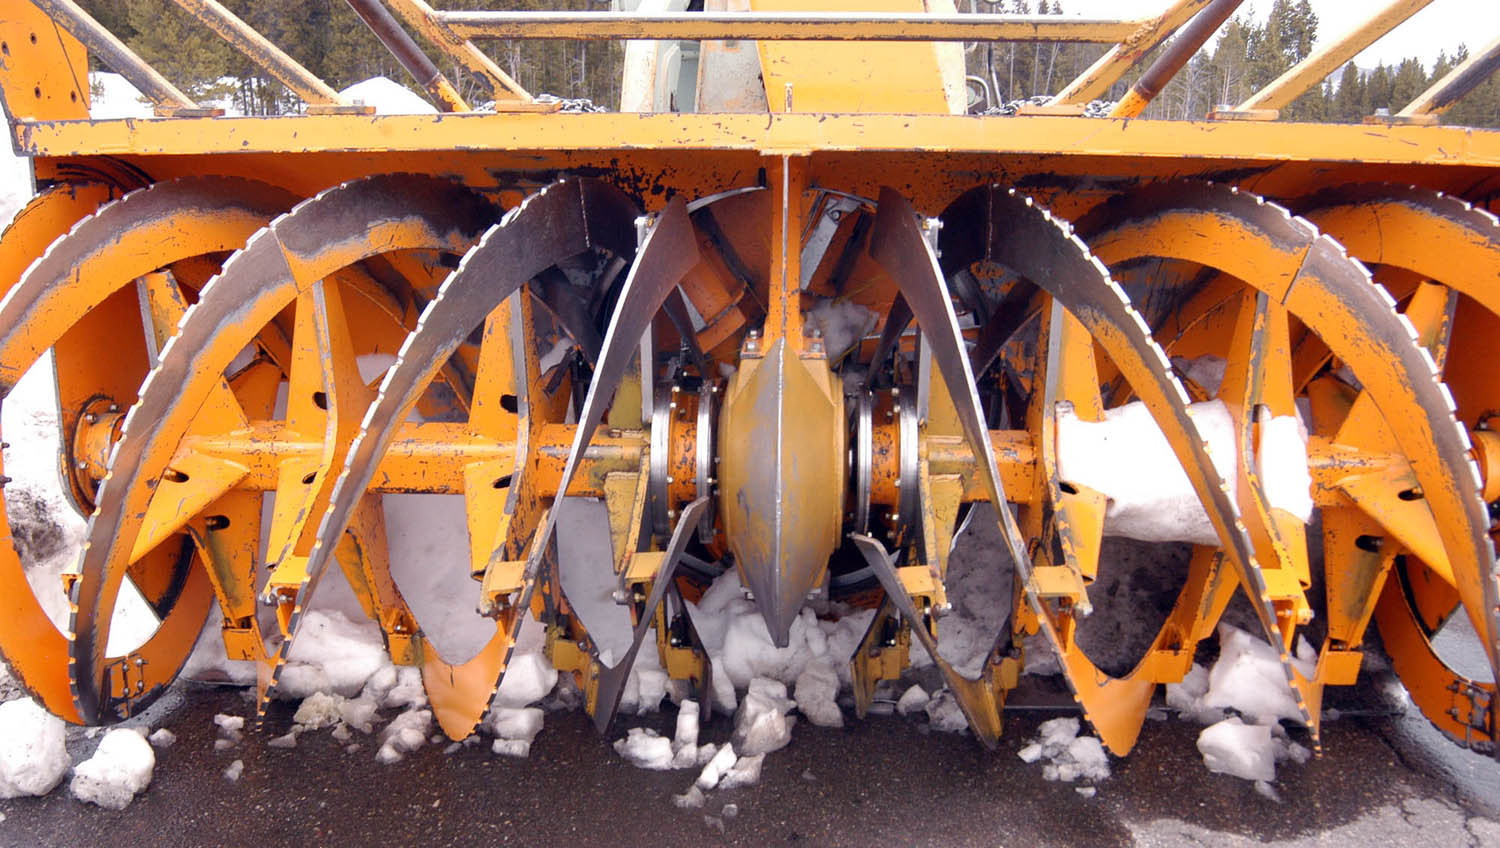 National Park Service road crews use rotary plows to clear heavy snows at the end of the winter season in Yellowstone and Grand Teton national parks. (Ruffin Prevost/Yellowstone Gate - click to enlarge)